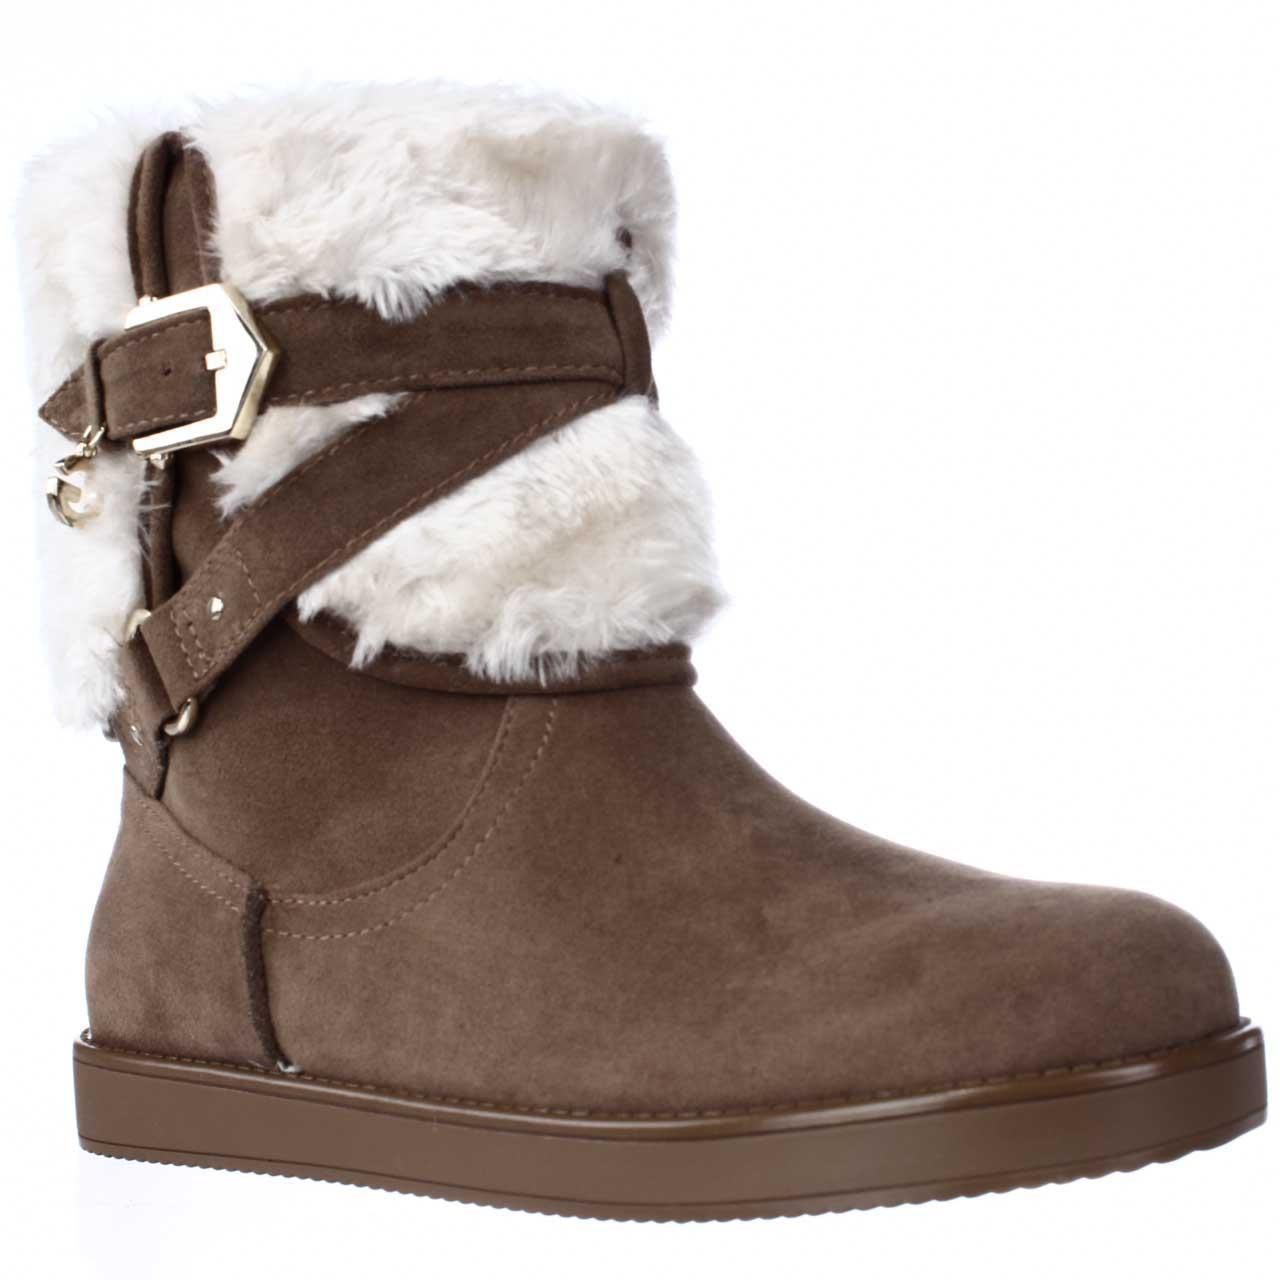 Womens G by GUESS Alixa Fuzzy Lined Pull On Short Winter Boots Medium Natural by Winter Boots